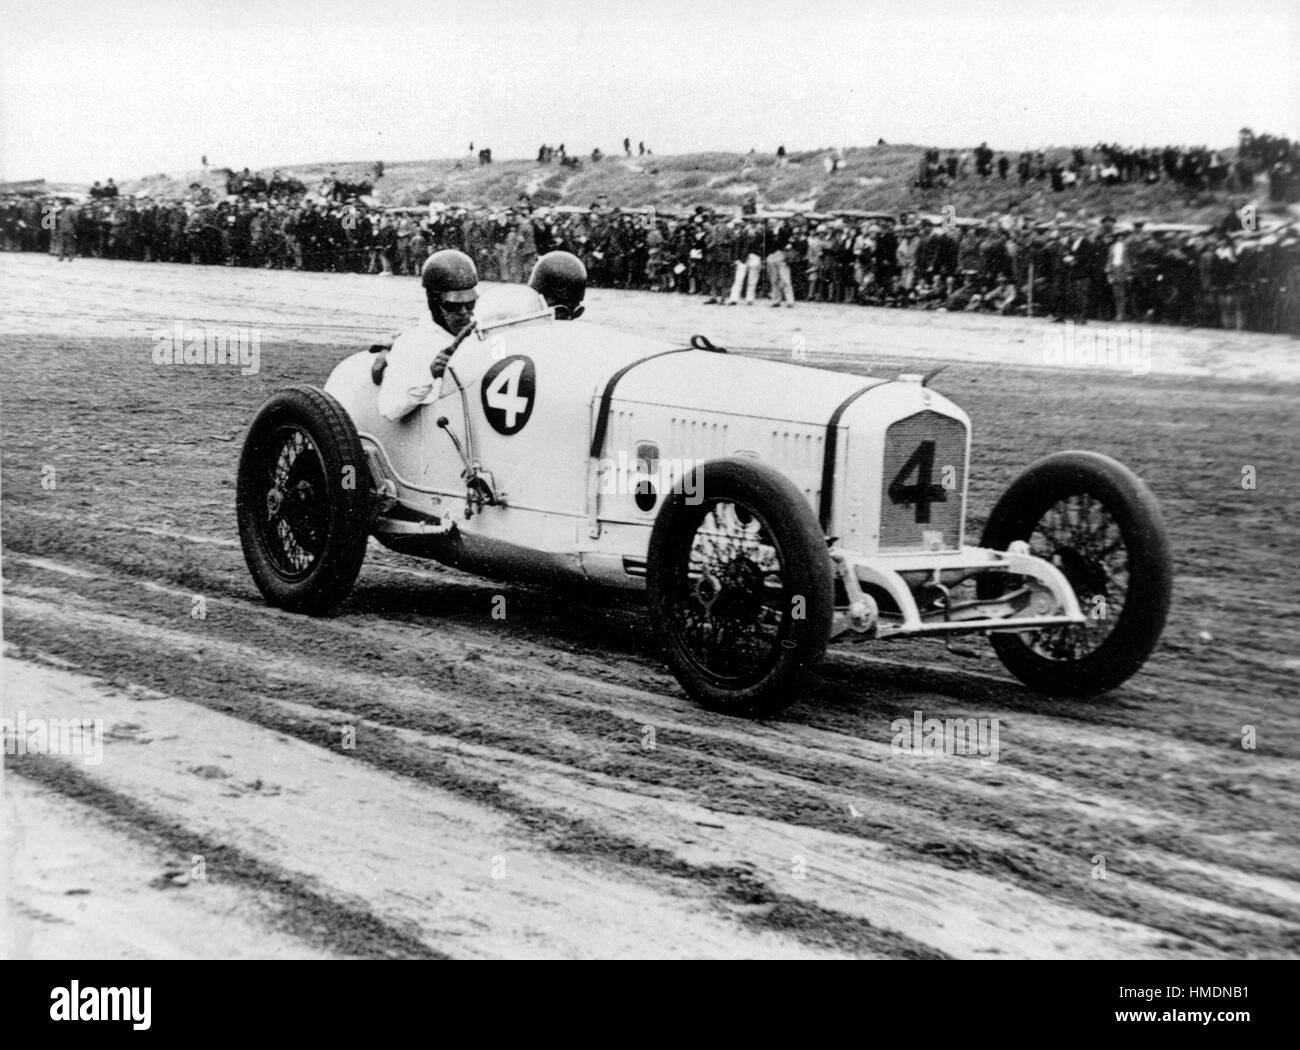 Vintage Car Racing Black and White Stock Photos & Images - Alamy